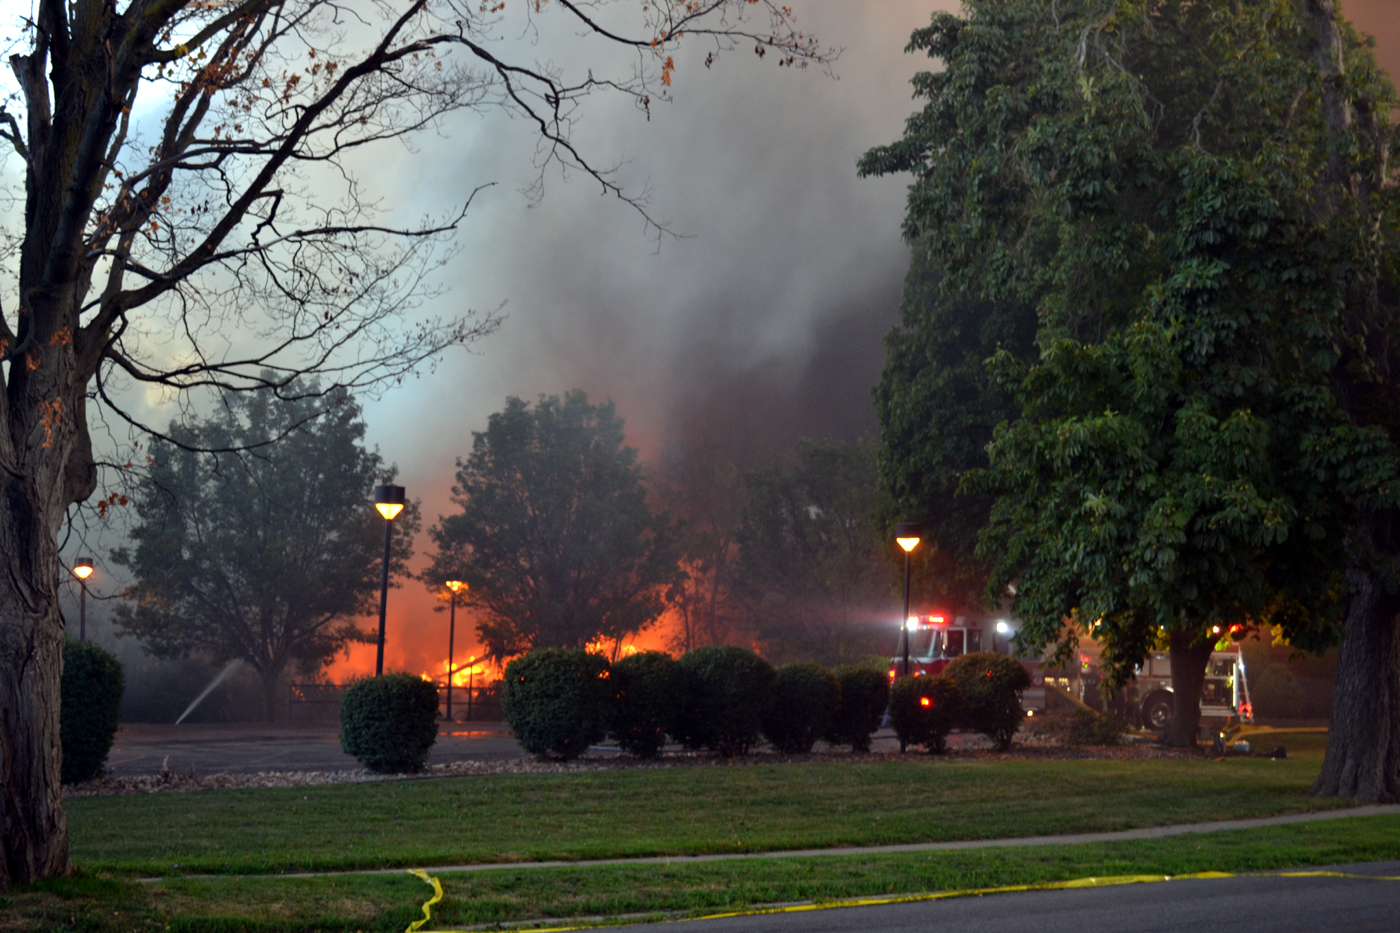 The scene of the fire on Stevens Street in Lockport. (Larry Kensinger/Special to The News)